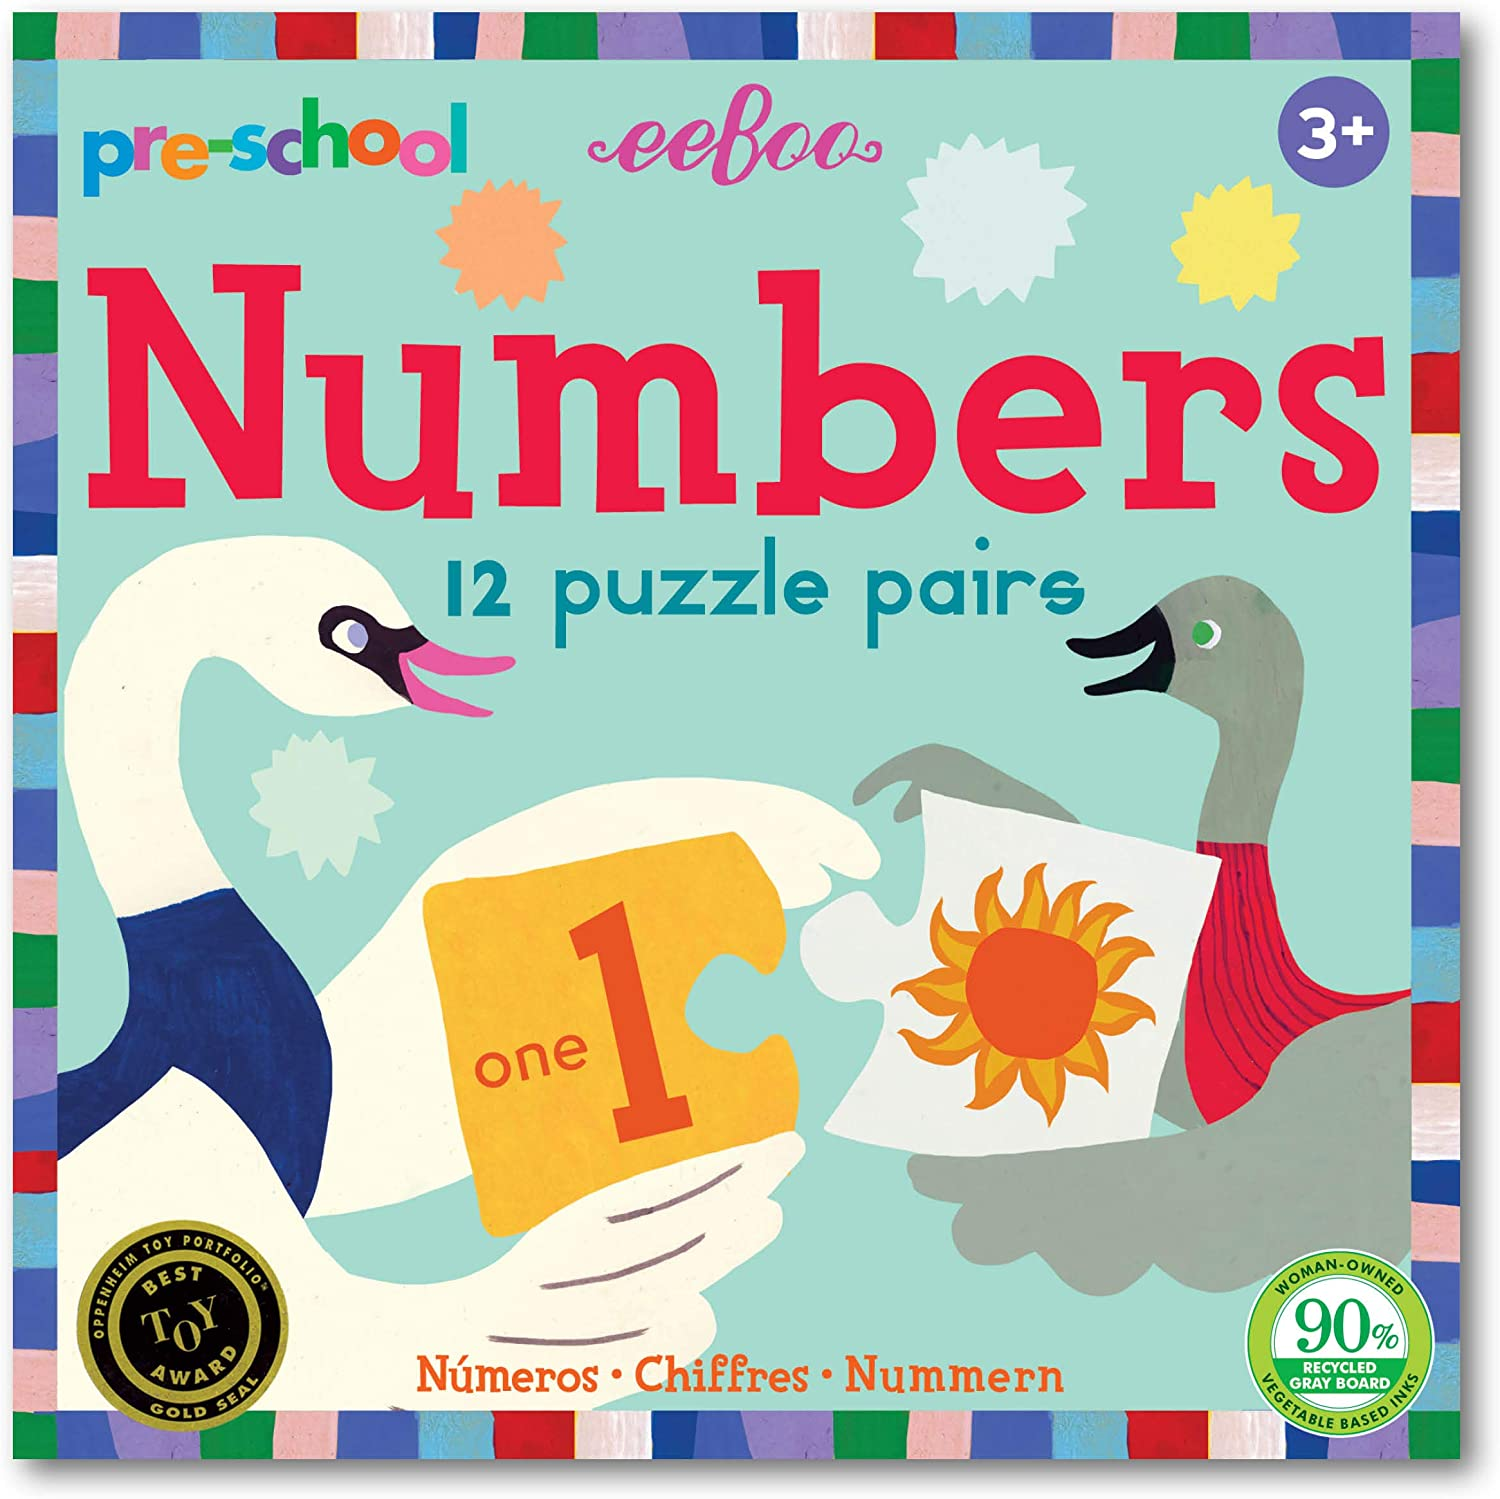 Pre-School Numbers Puzzle Pairs